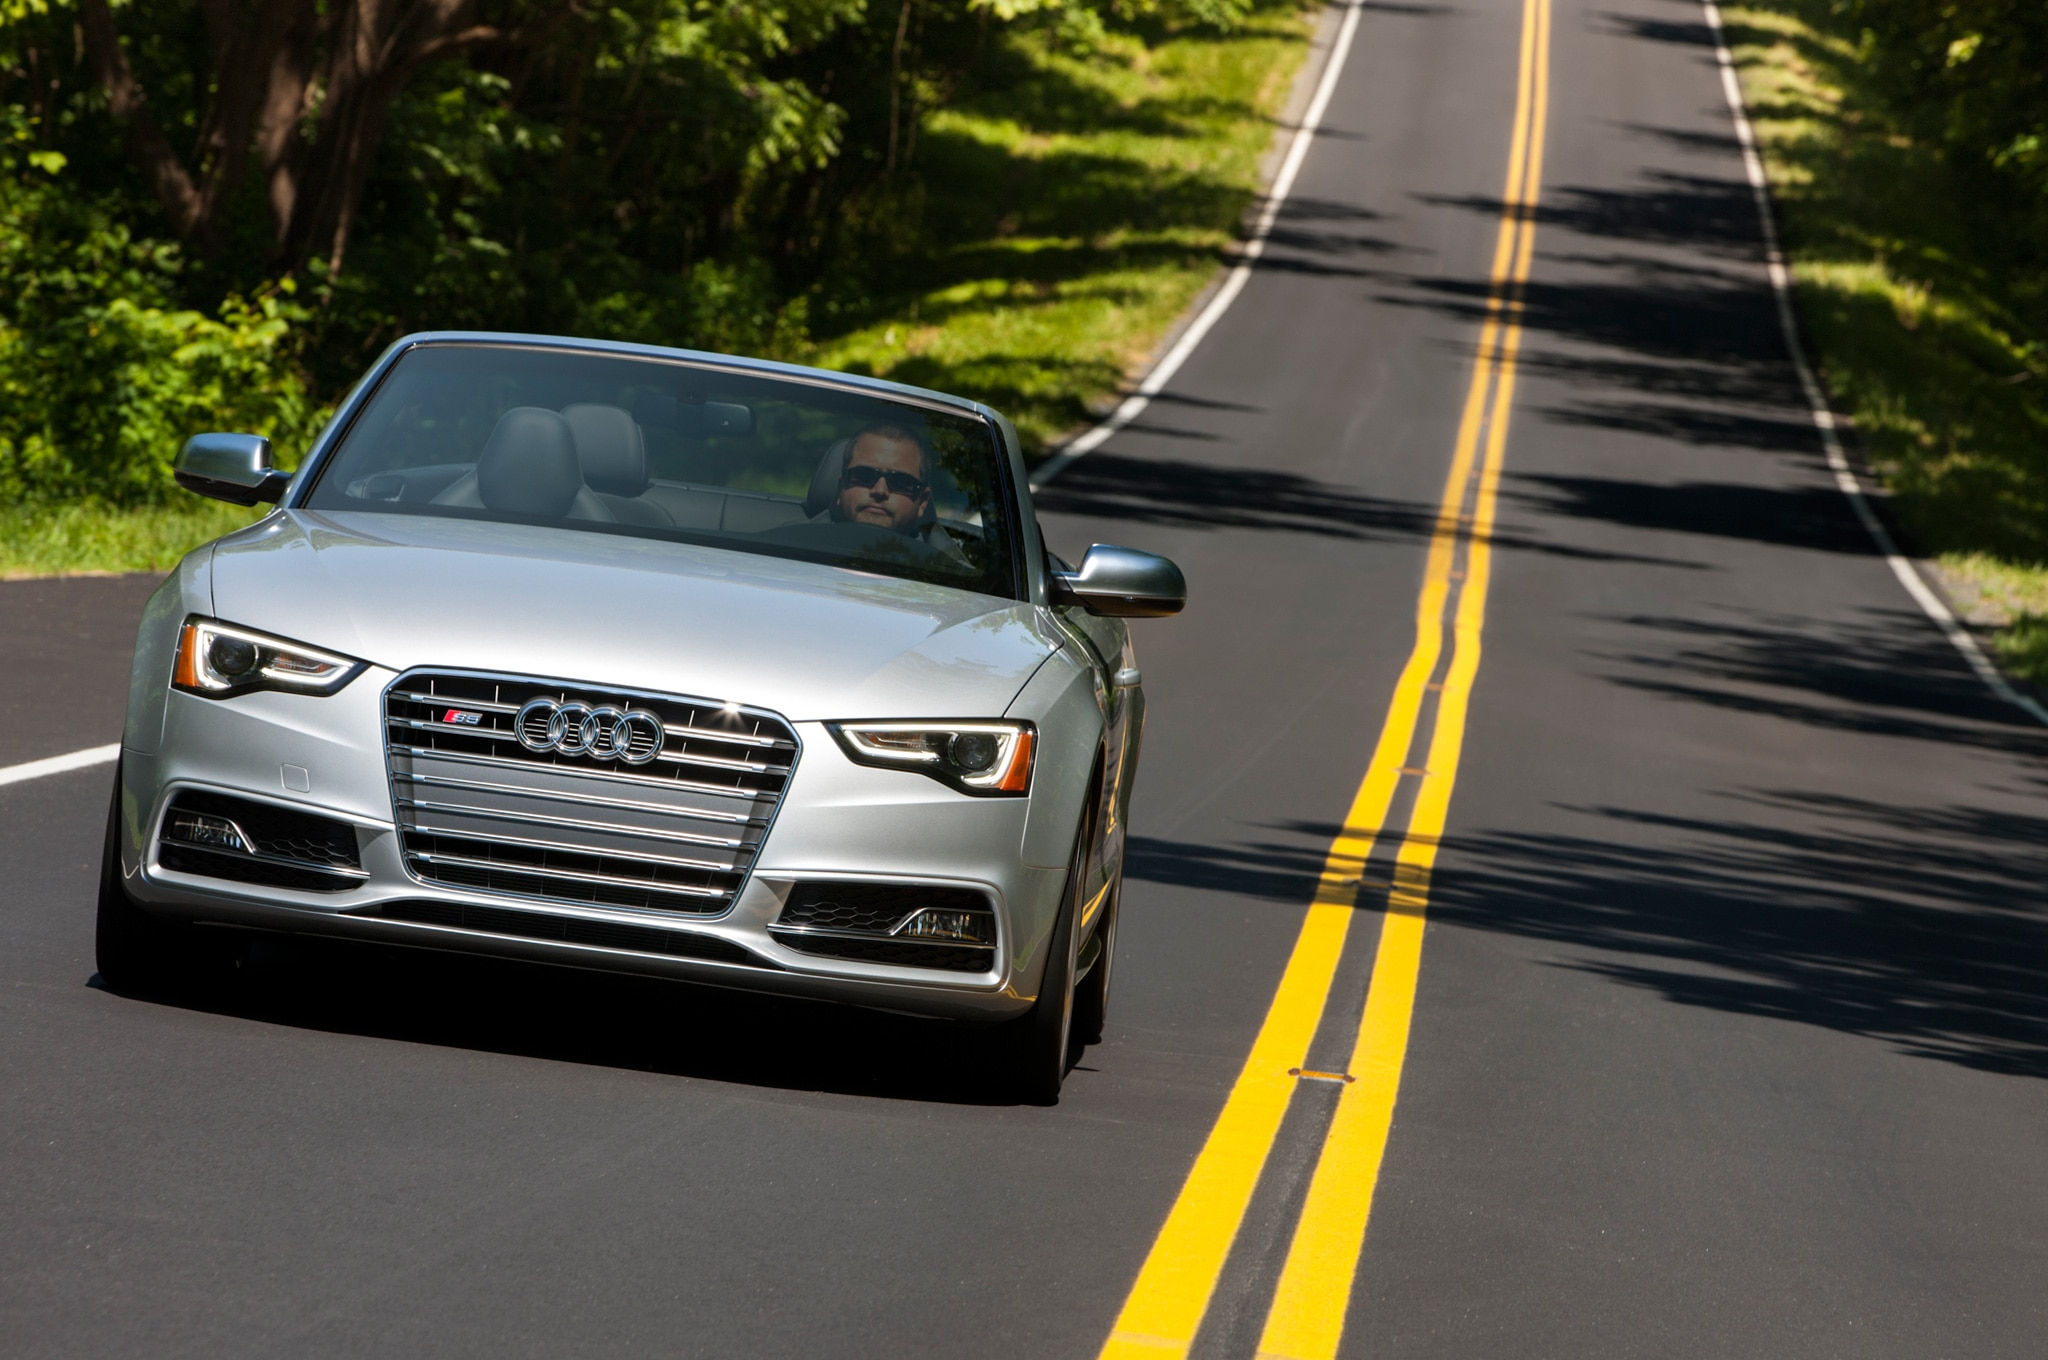 Audi S5 Cabriolet Lead Image1